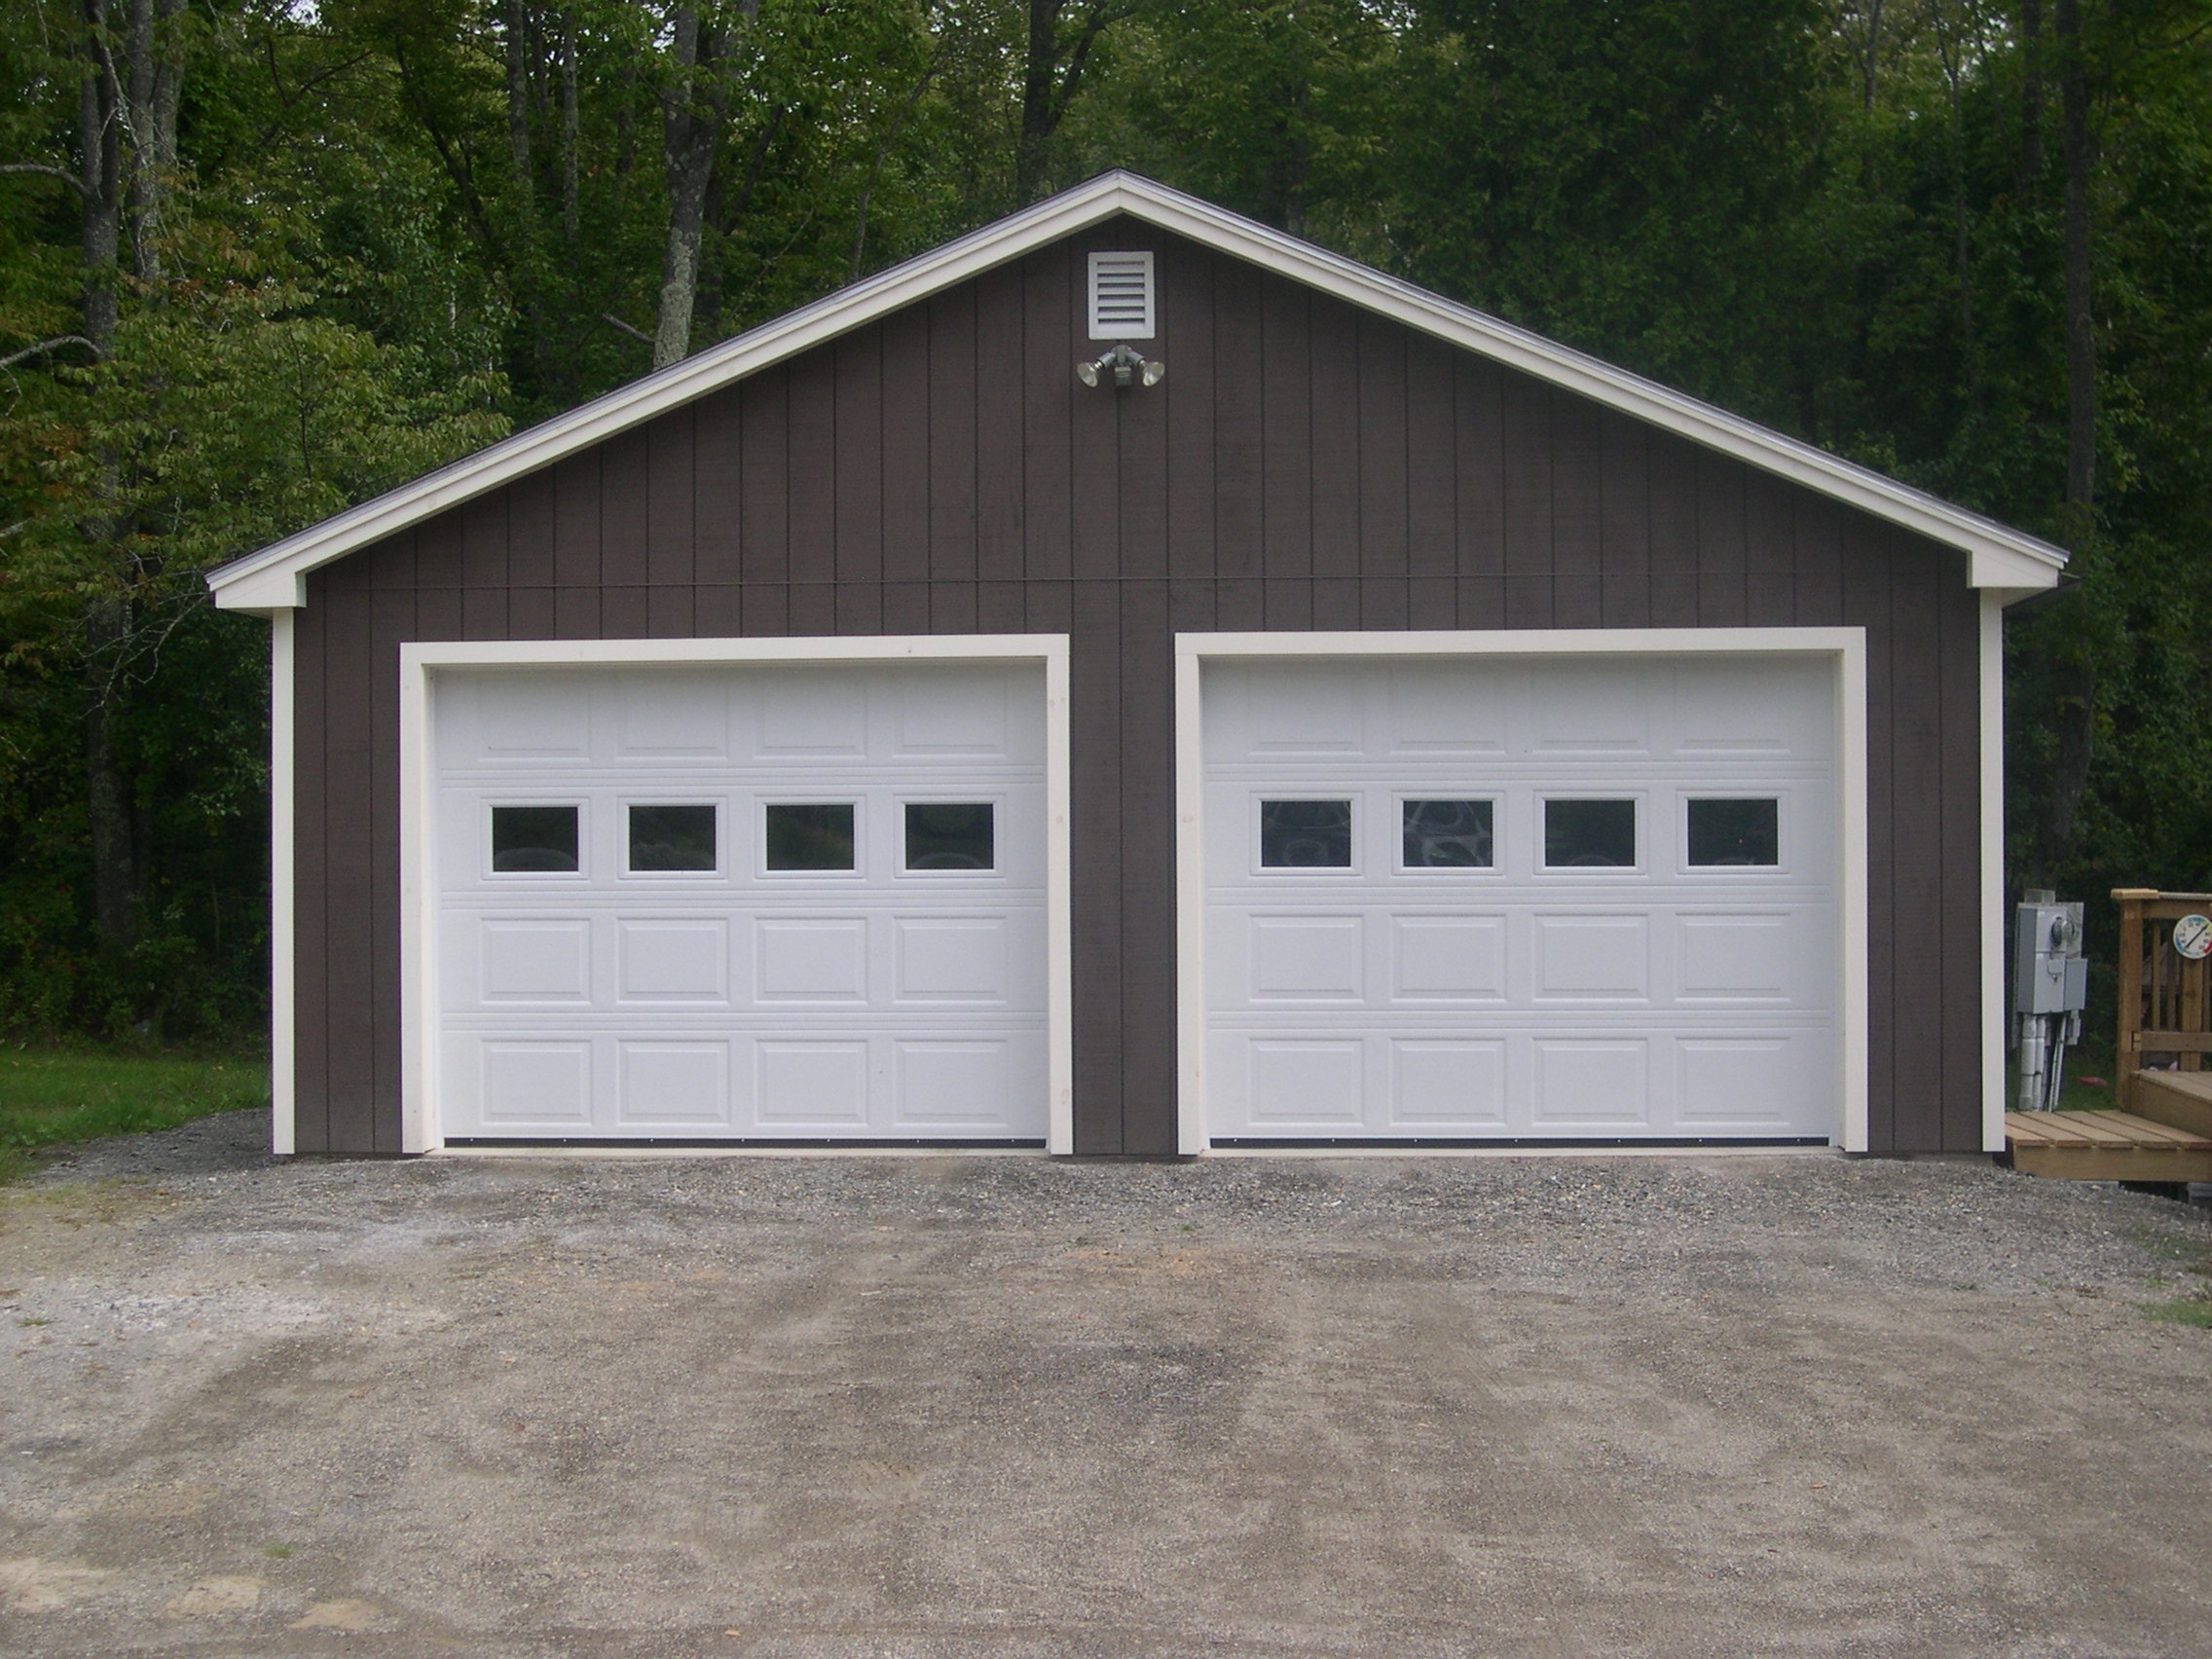 How much to build a garage on side of the house uk Garage building prices